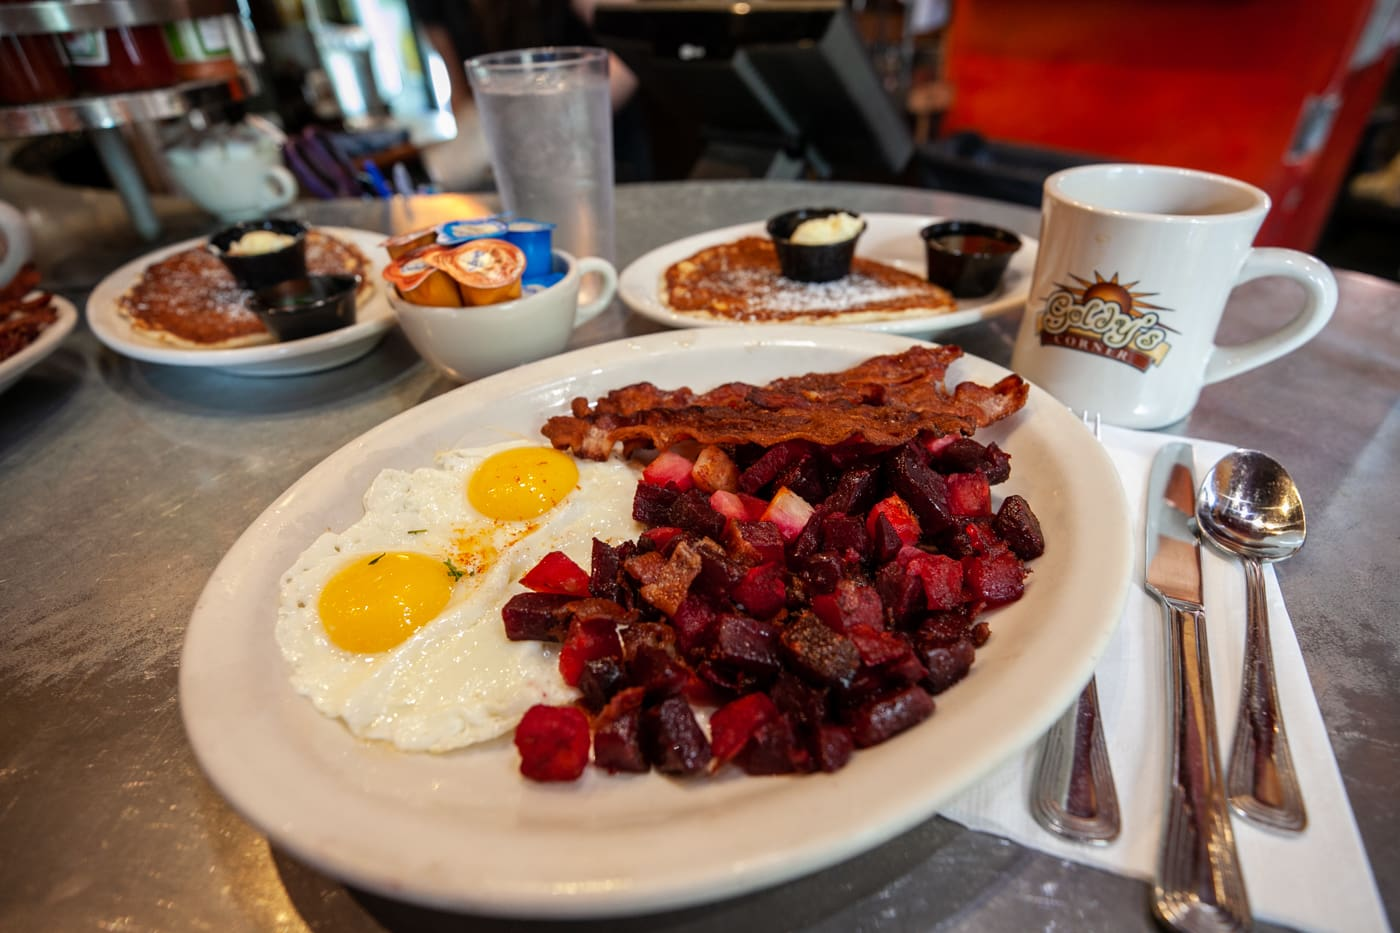 Create-your-own breakfast combo I had at Goldy's Breakfast Bistro in Boise, Idaho: two eggs (sunny side up), bacon, red flannel hash (potatoes, beets, and... more bacon), a blueberry pancake, and, of course, some coffee to fuel my morning. It was so good.